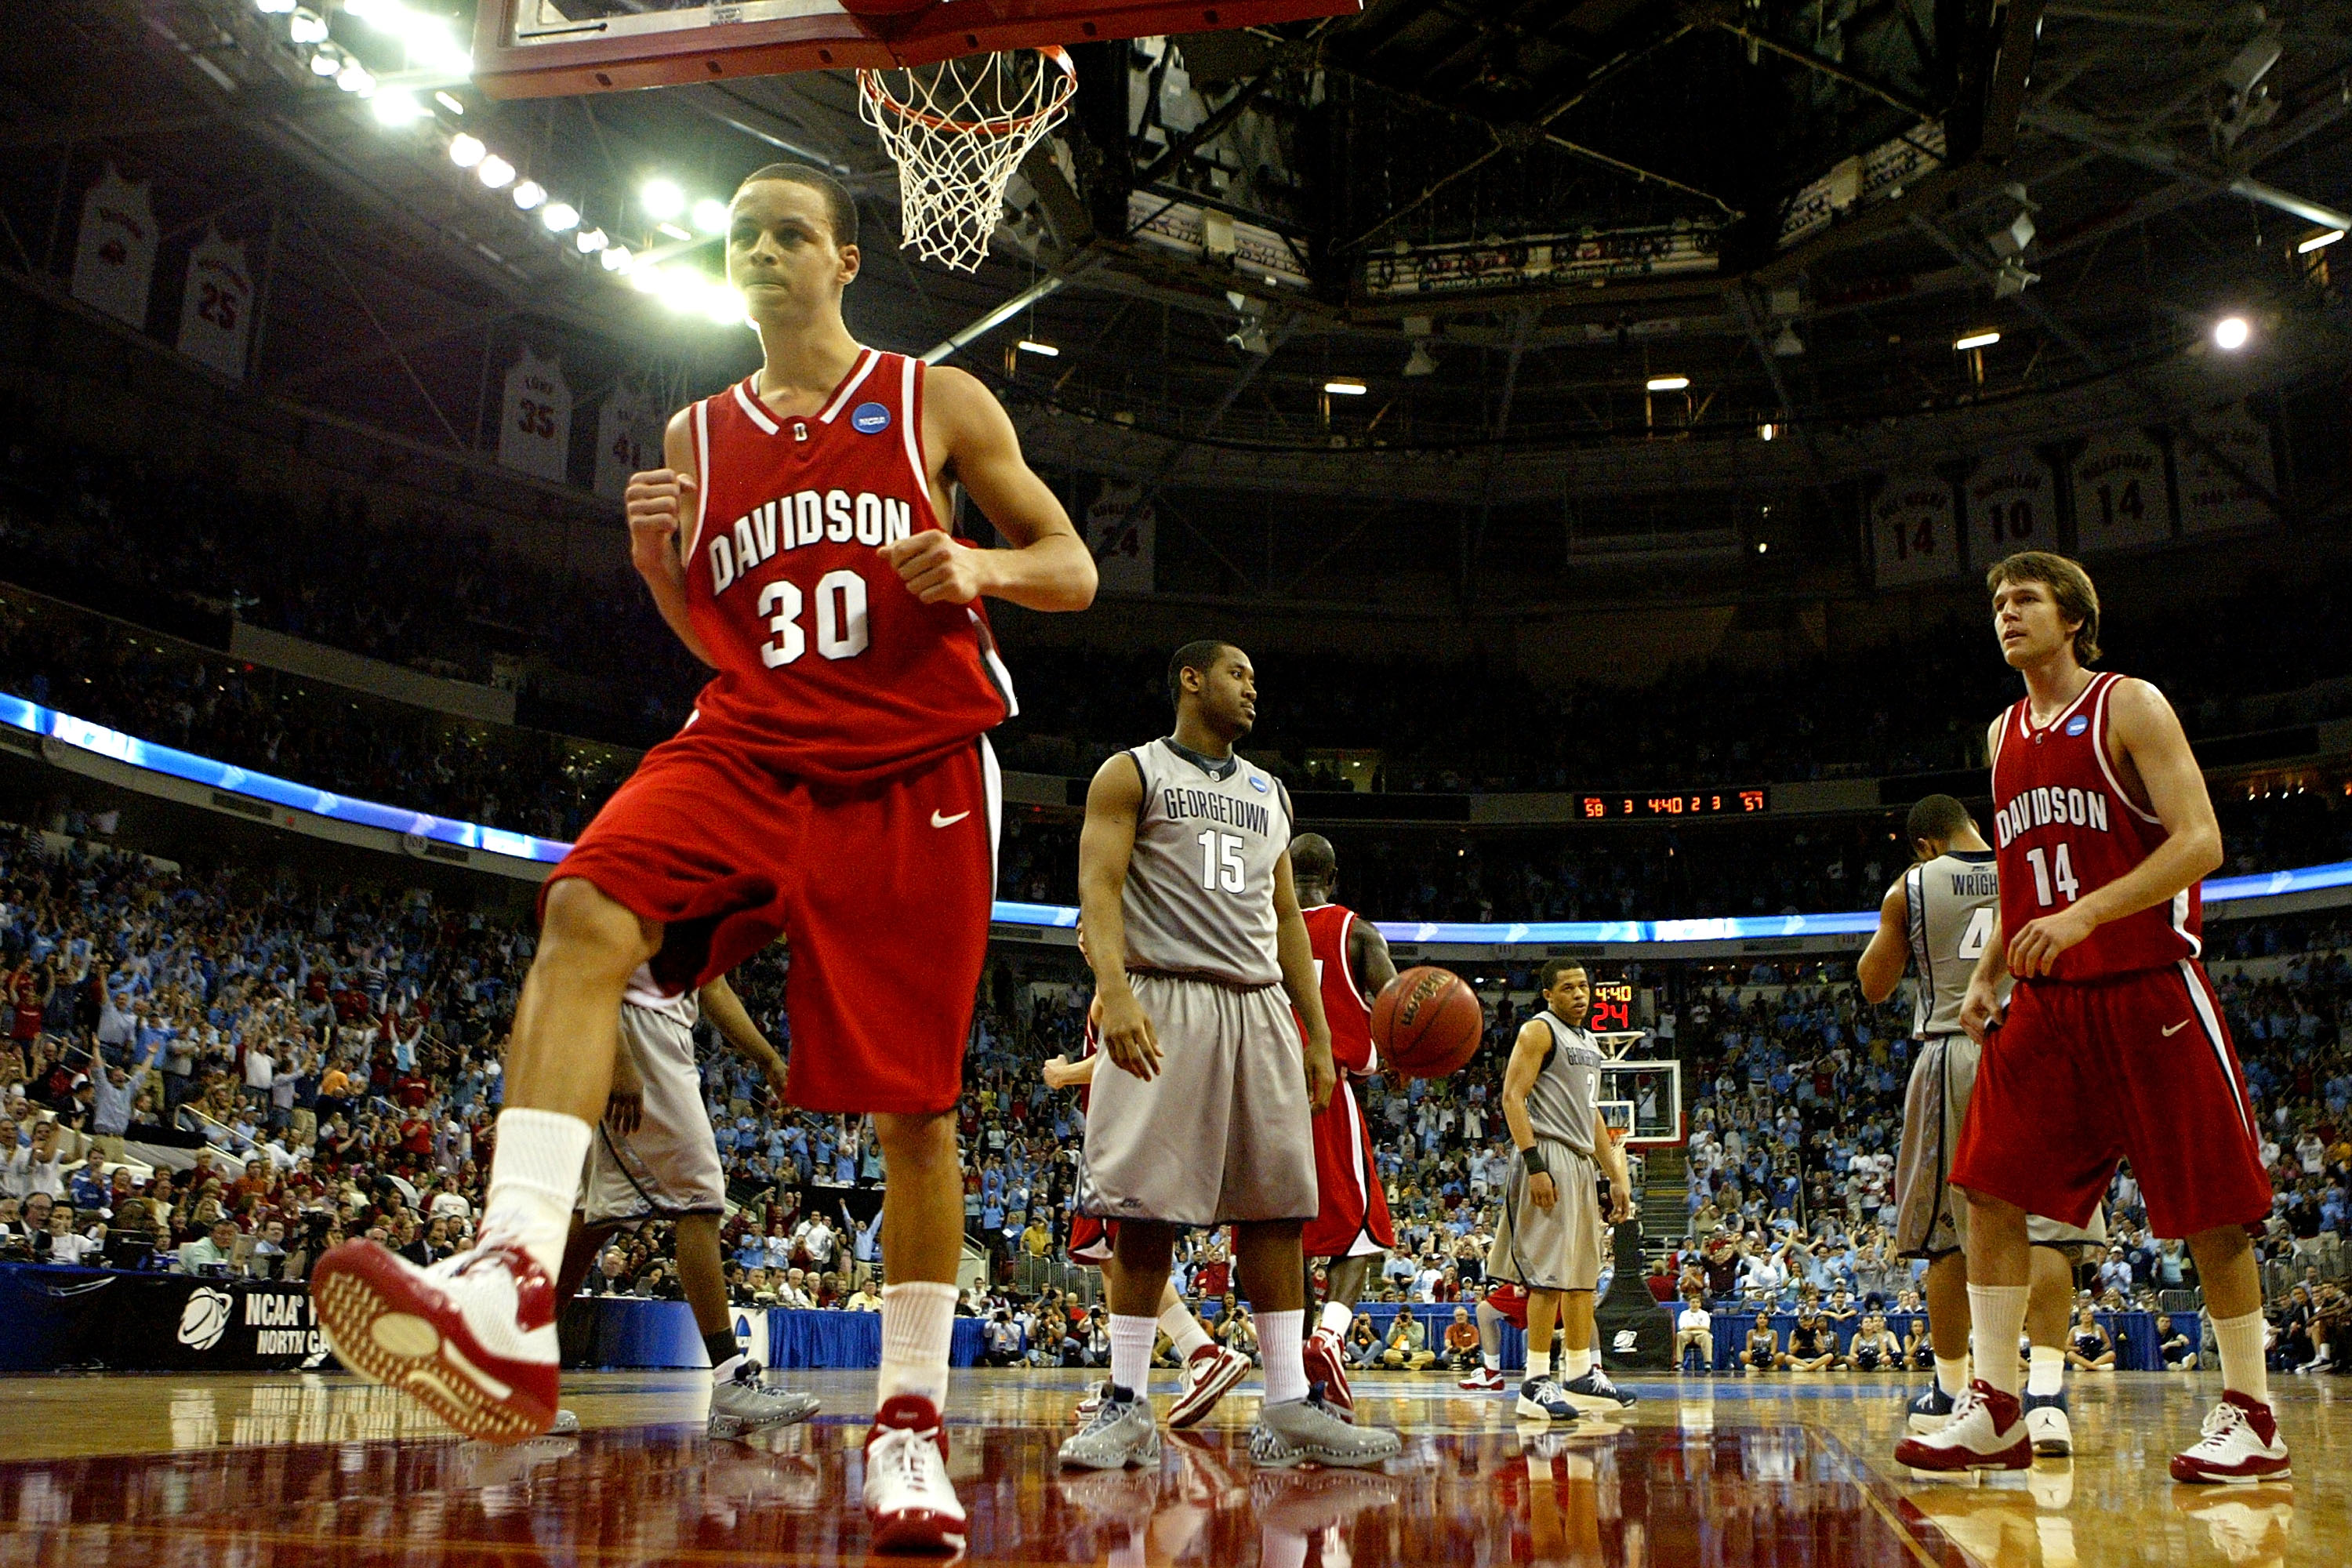 RALEIGH, NC - MARCH 23:  Stephen Curry #30 of the Davidson Wildcats celebrates after a basket against the Georgetown Hoyas during the second round of the 2008 NCAA Men's Basketball Tournament Midwest Regionals on March 23, 2008 at RBC Center in Raleigh, N